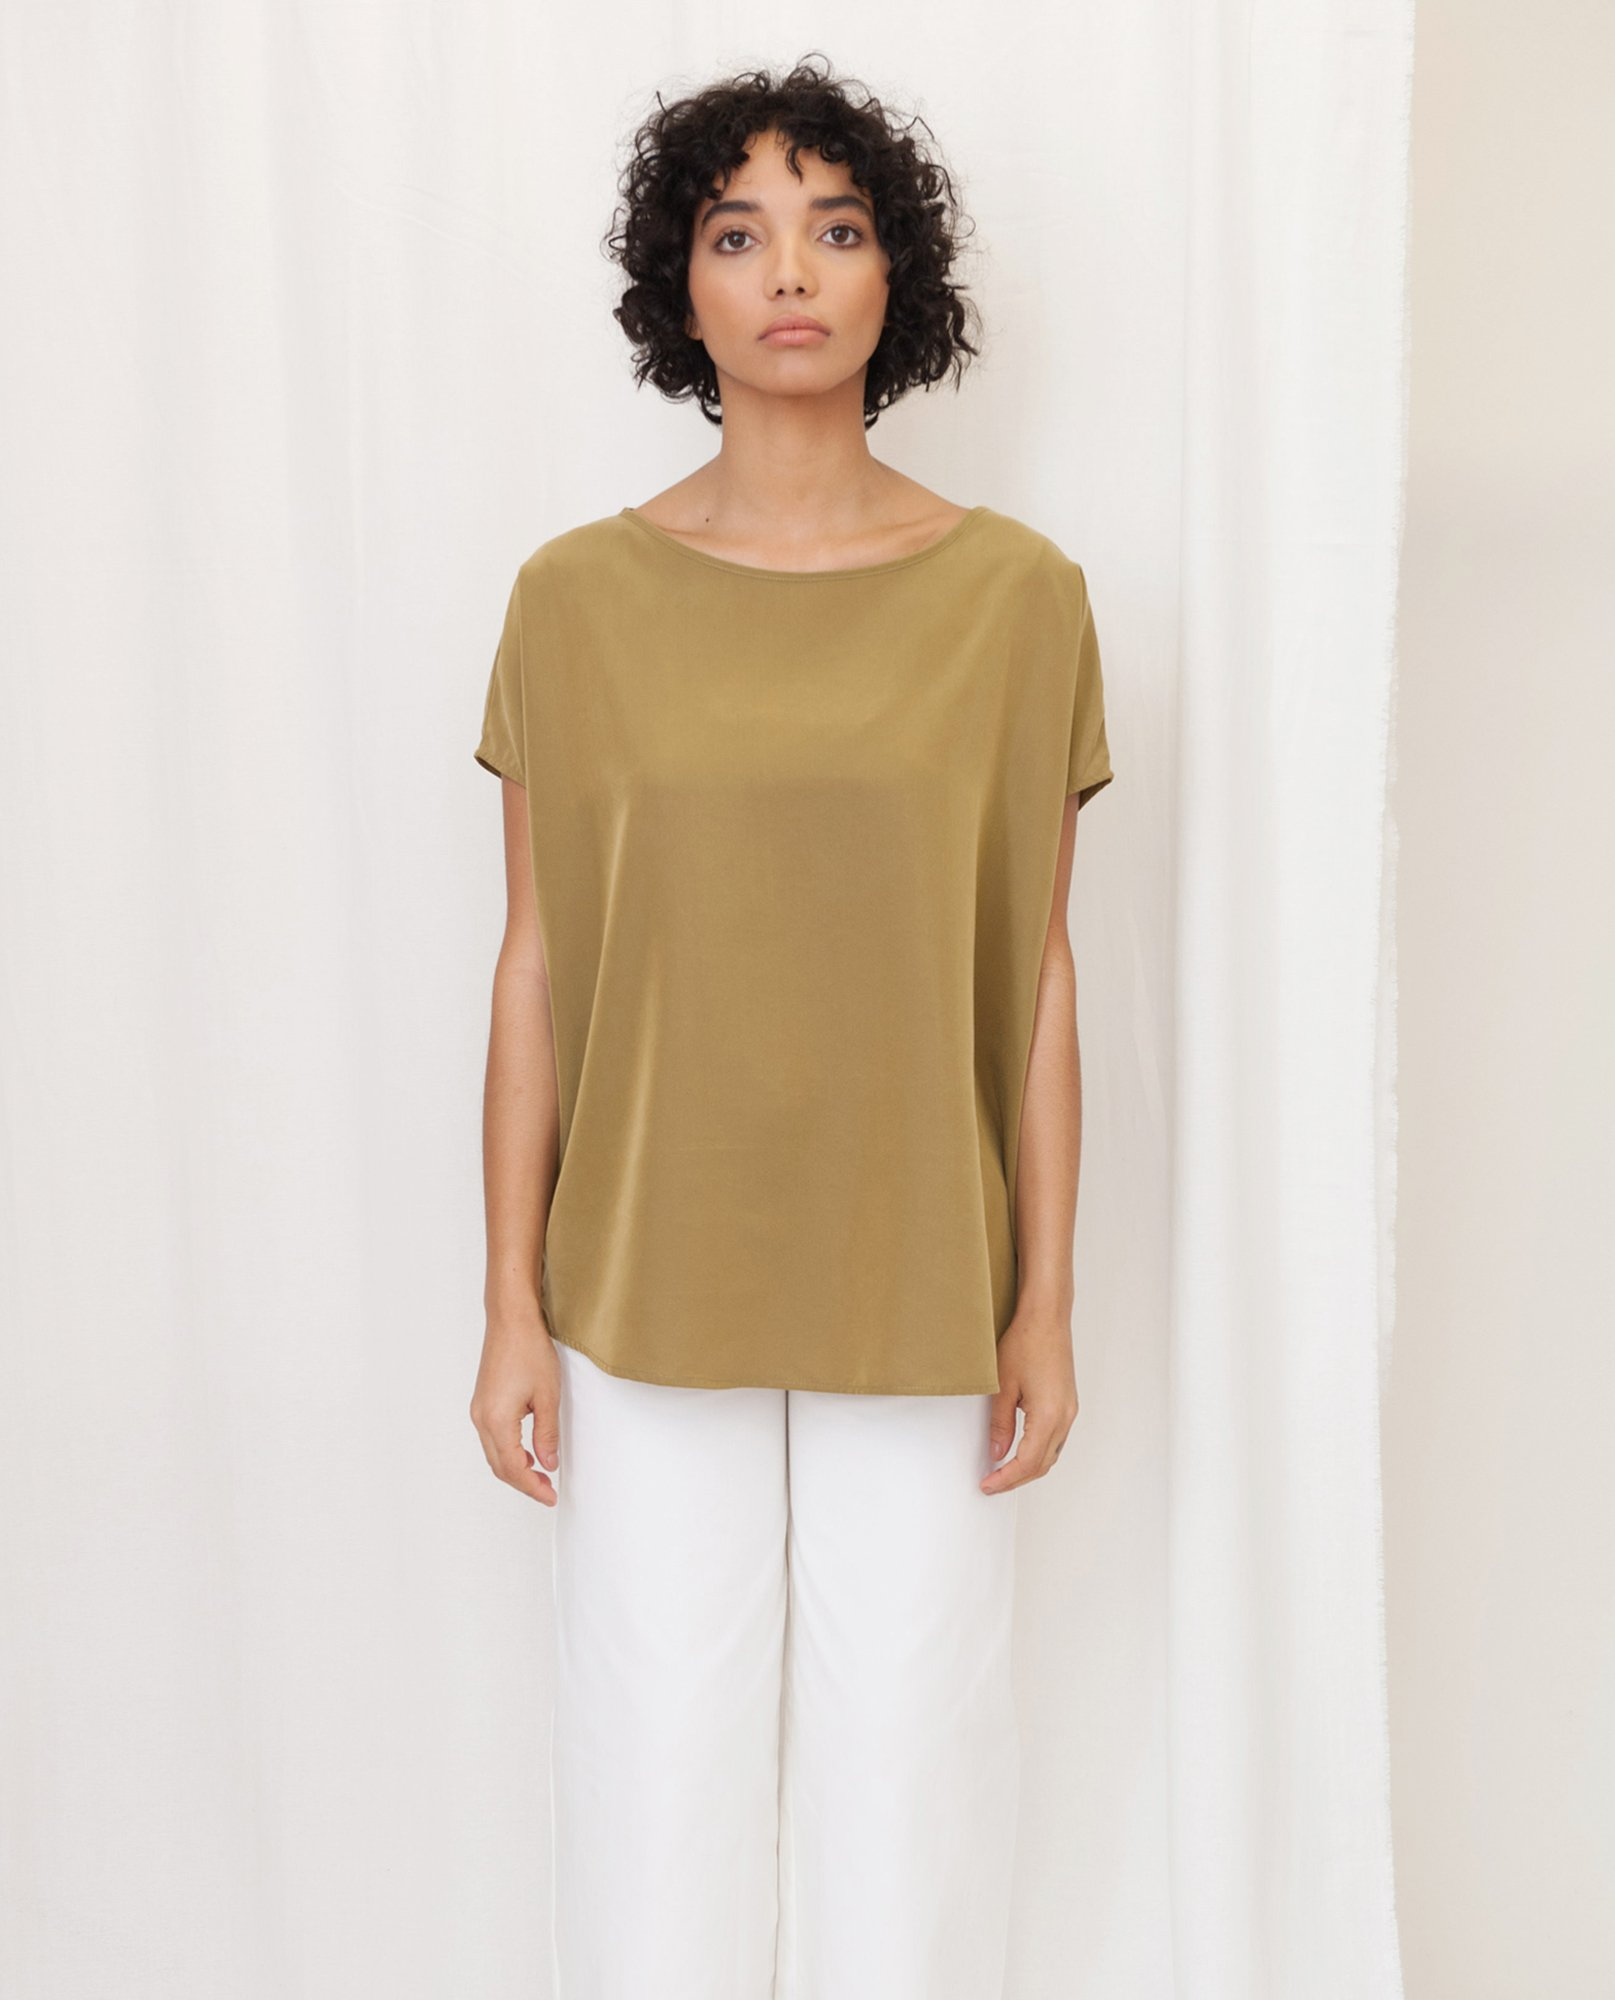 ALINE Modal Top In Khaki from Beaumont Organic